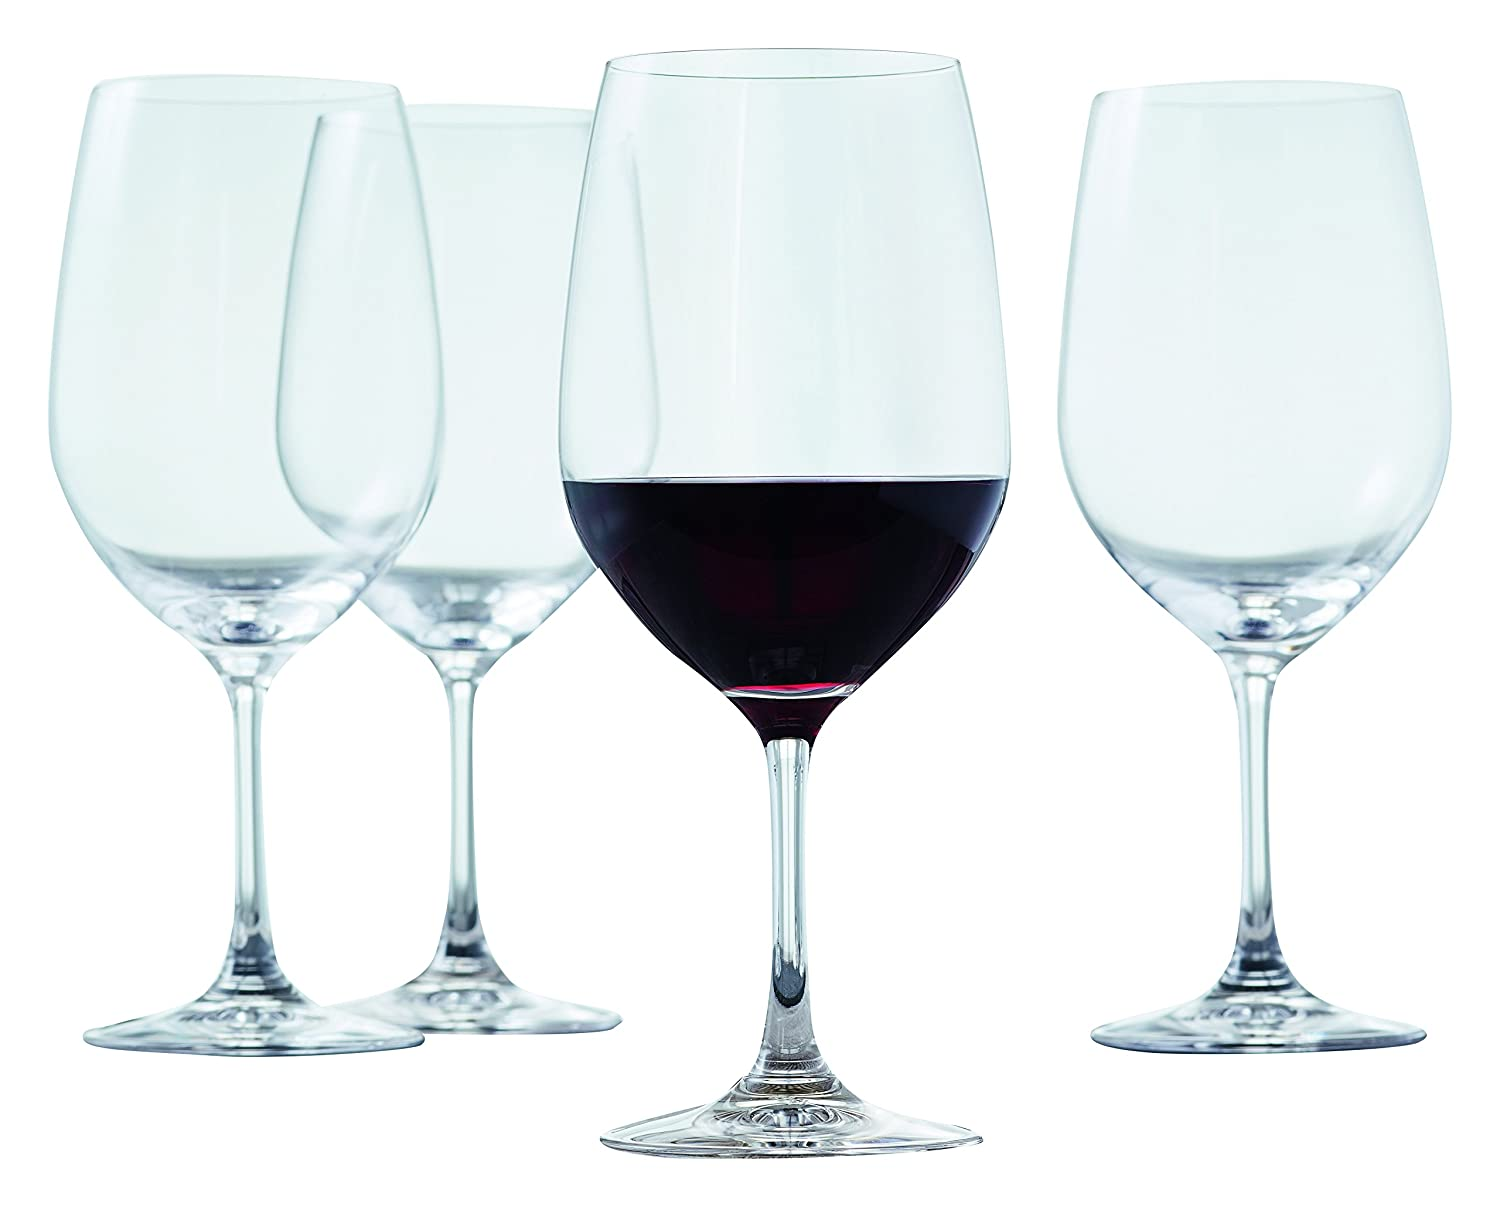 Spiegelau Style Burgundy Wine Glasses - (Set of 4, Clear Crystal) 4670180